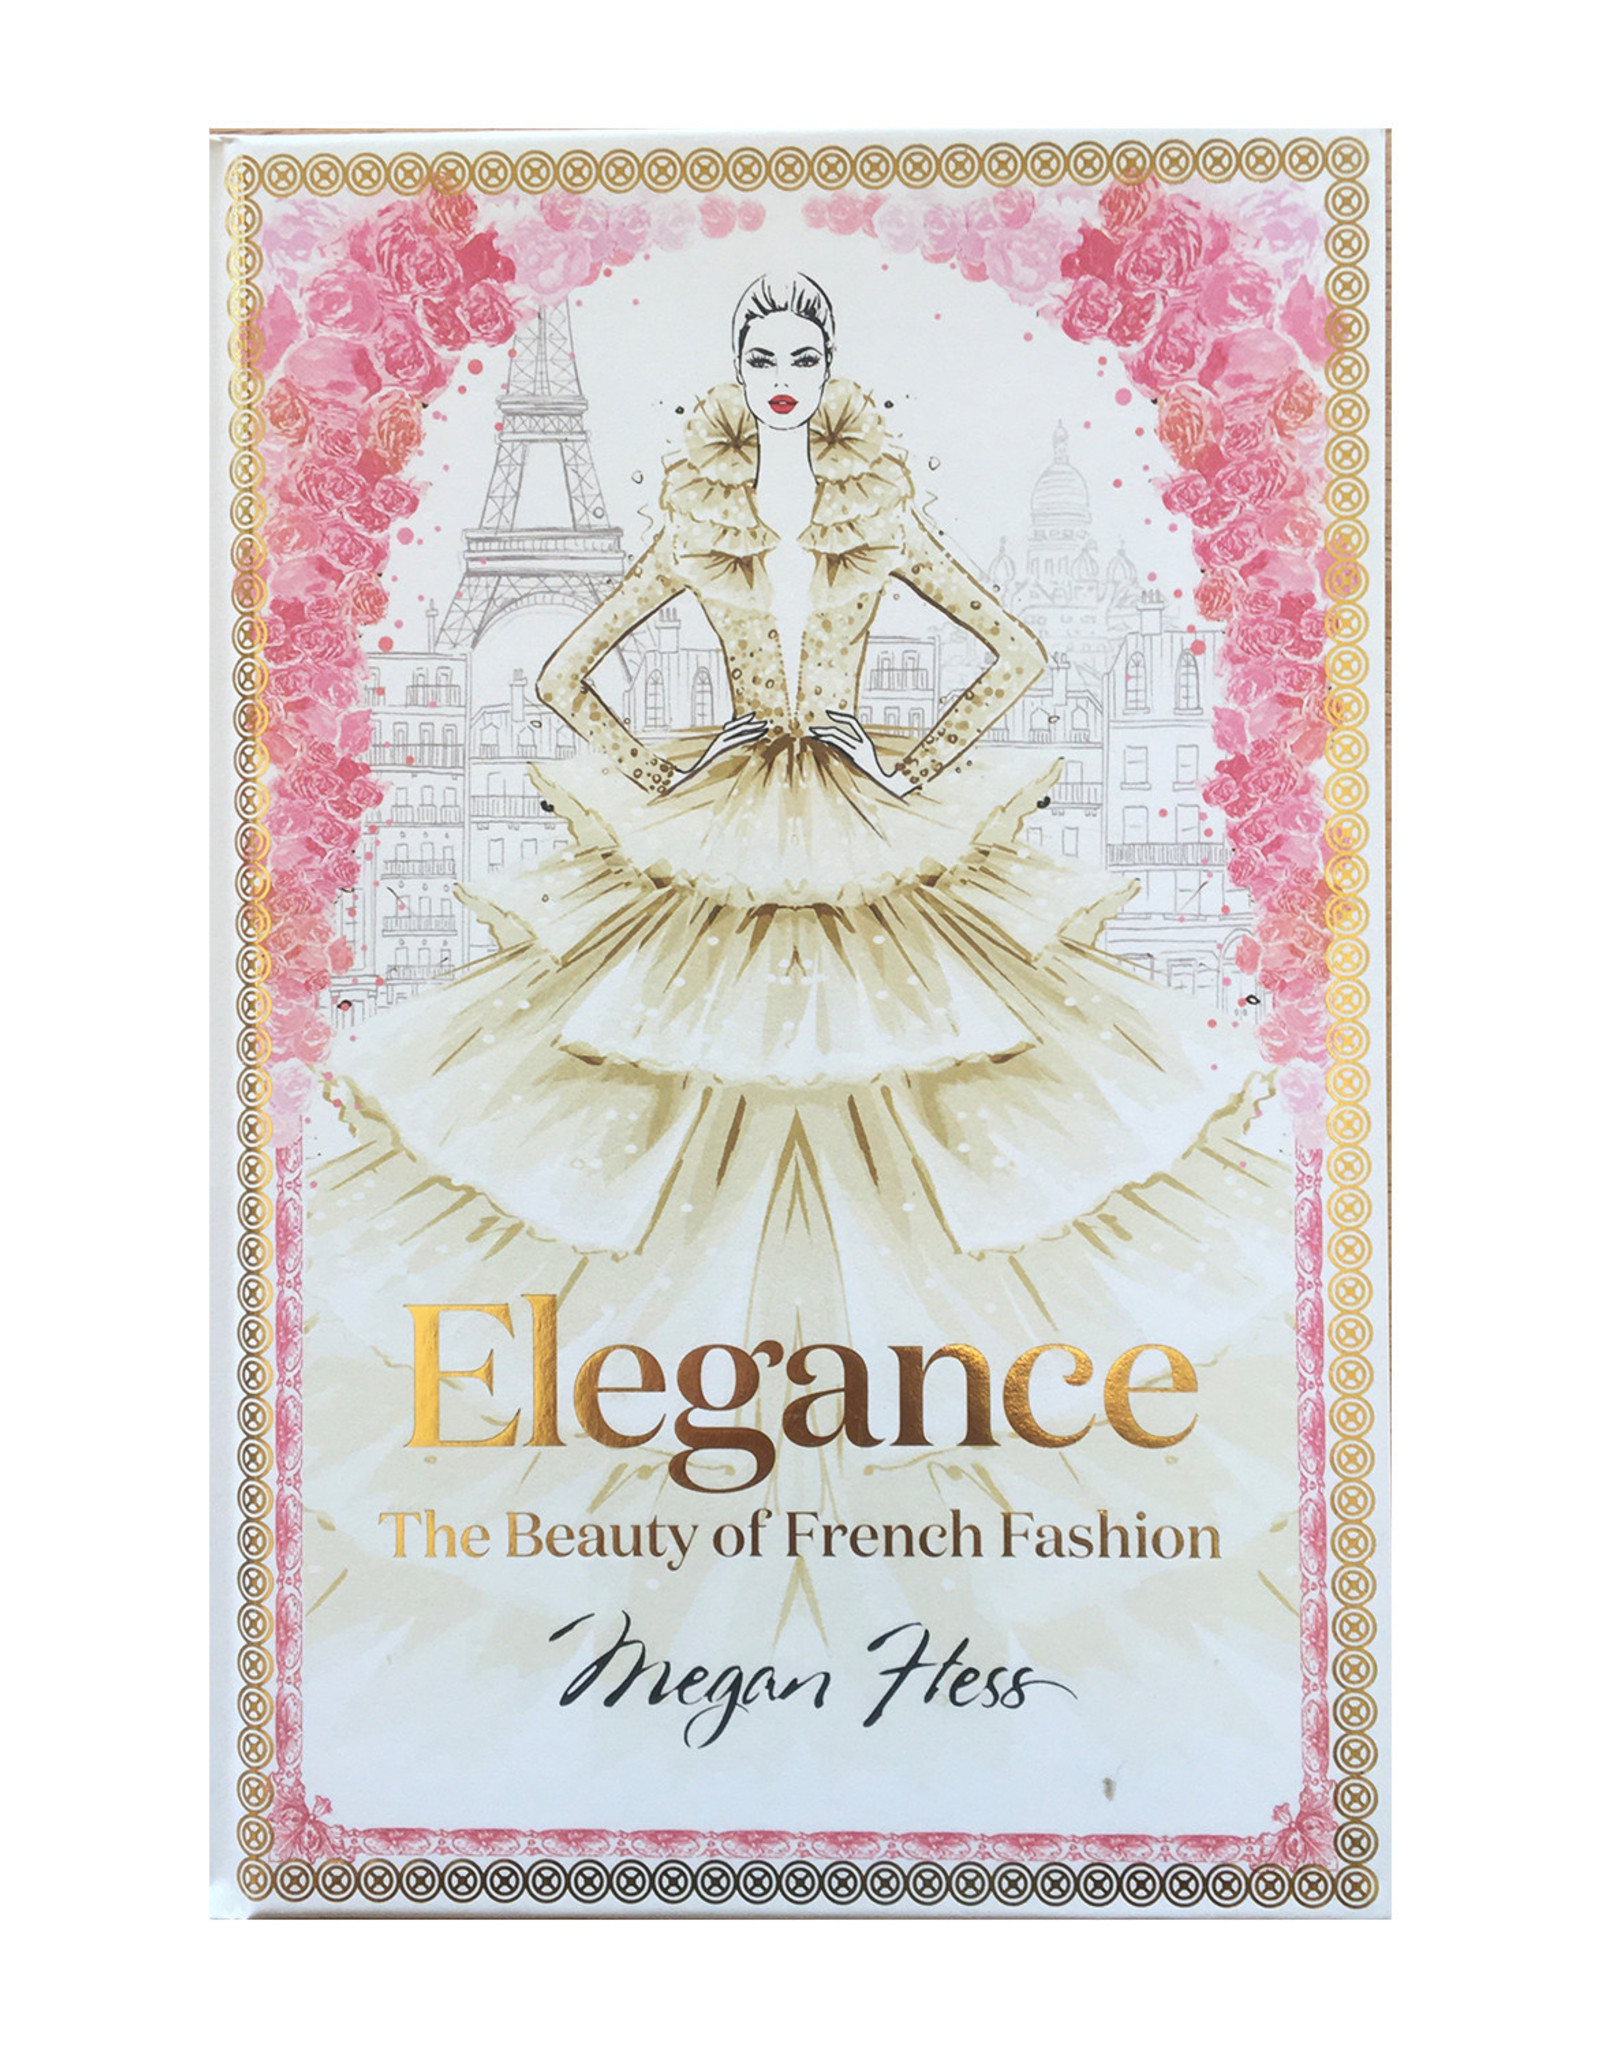 CGDistributors Elegance - The Beauty of French Fashion - By Megan Hess